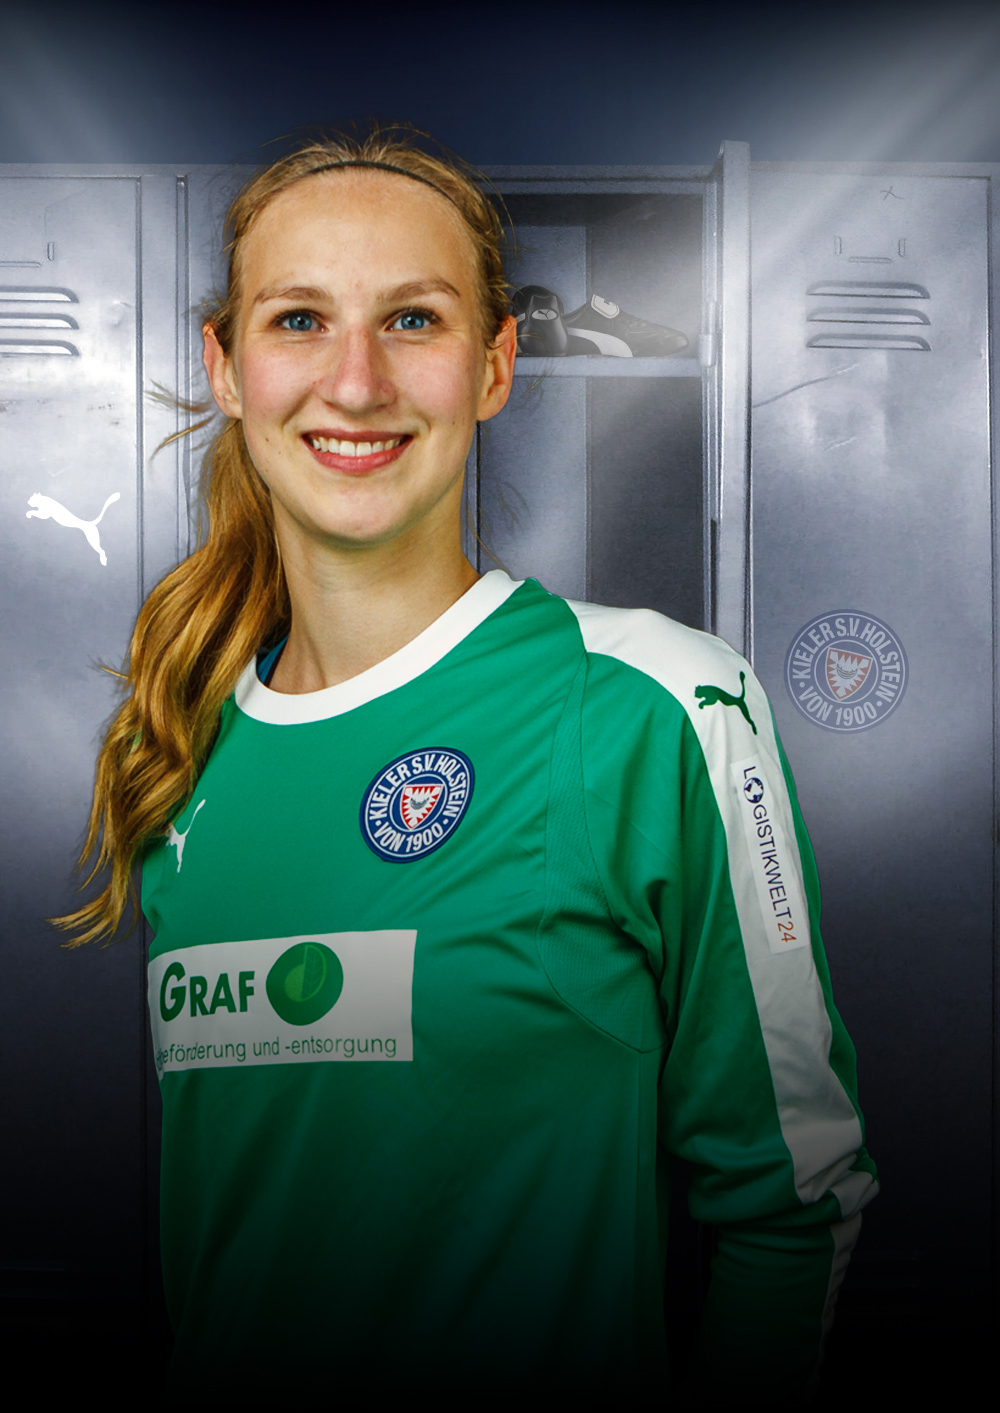 KSV-Women-Player-Erste-22-Liz_Pirotton-TW